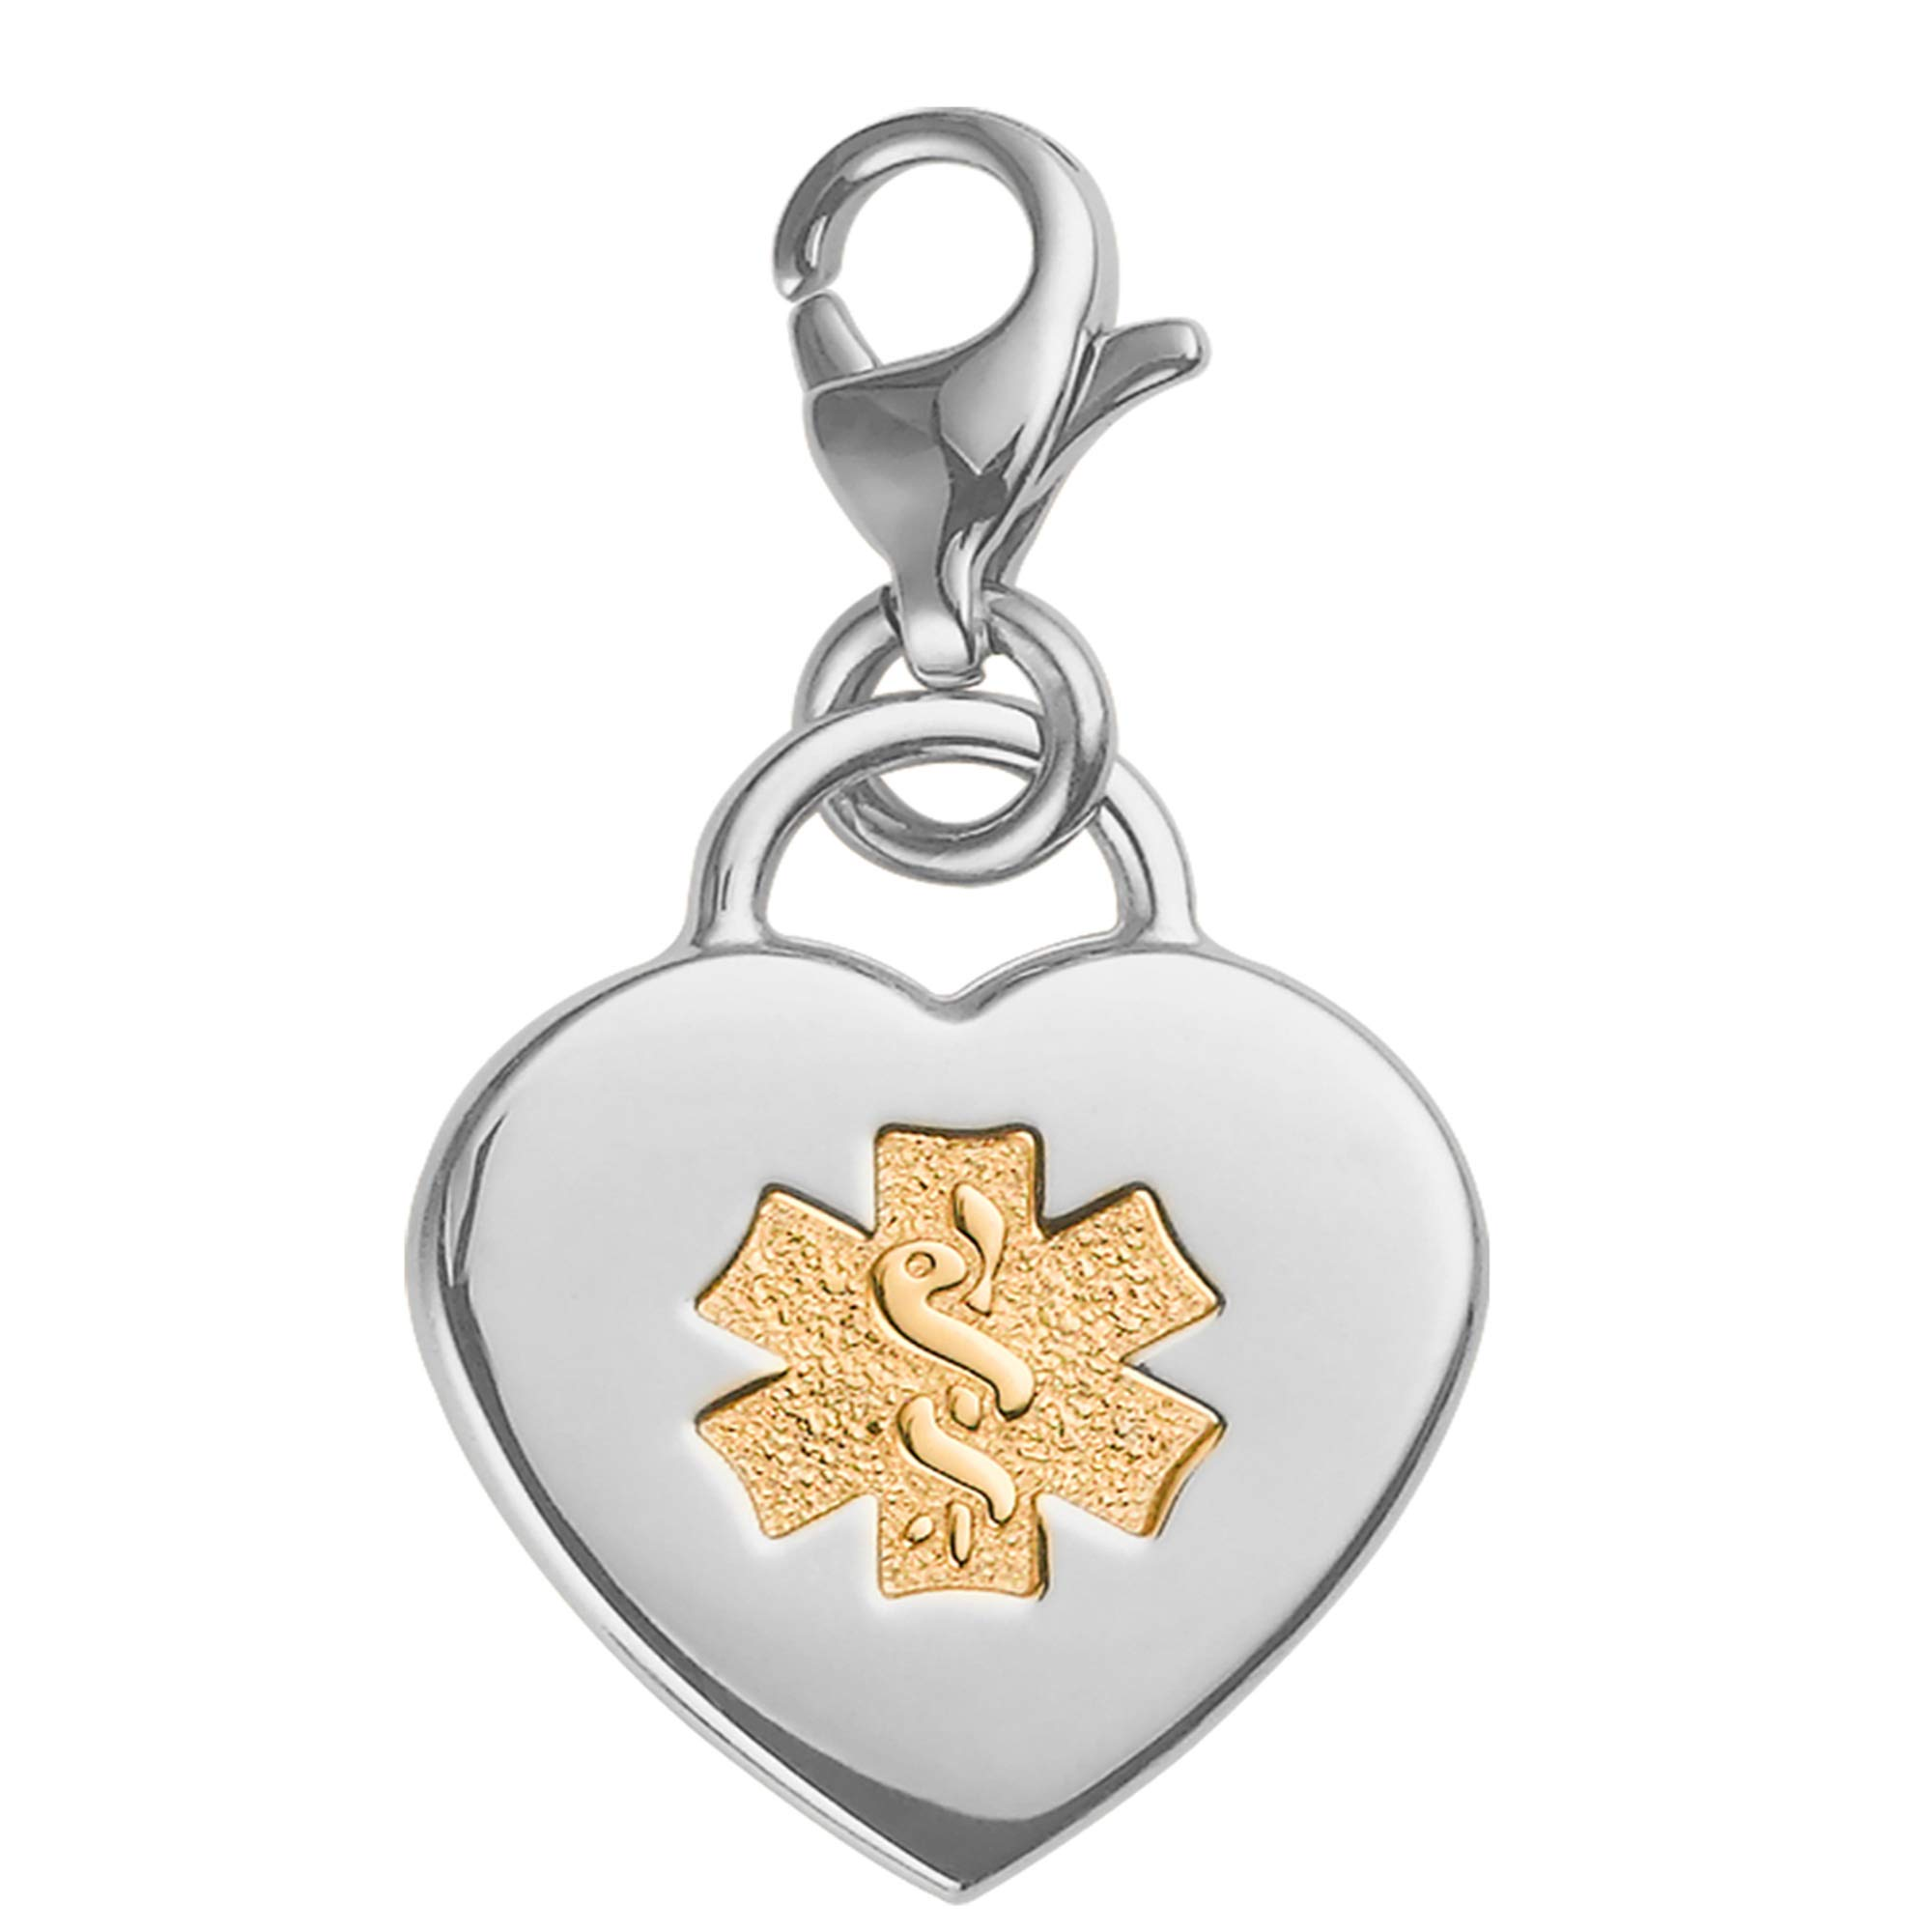 Divoti Deep Custom Laser Engraved Adorable Heart 316L Medical Alert Charm/Medical ID Charm w/Lobster Clasp-PVD Gold by Divoti